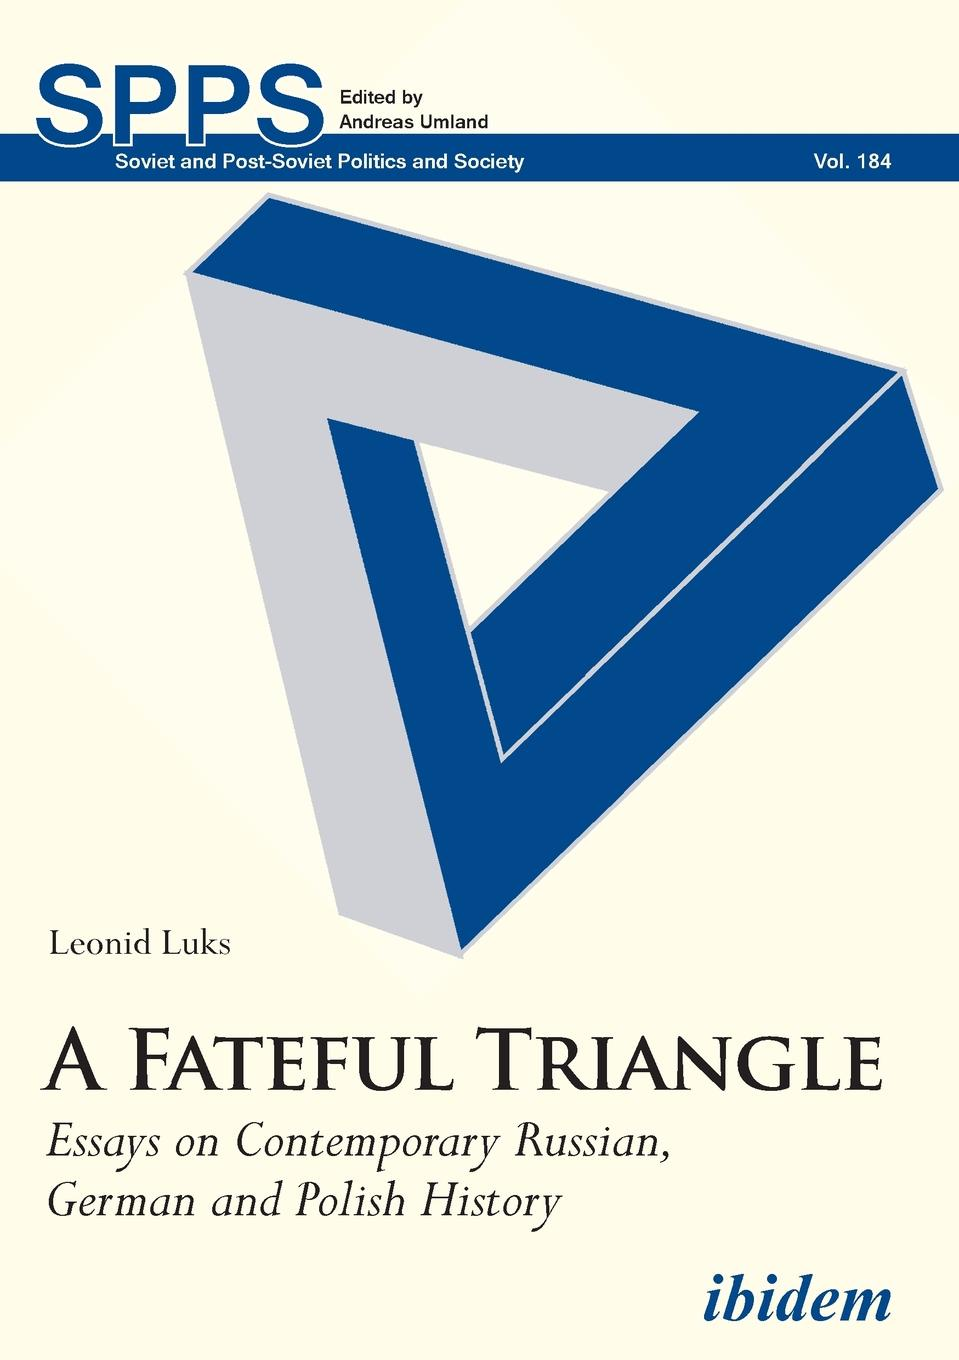 Leonid Luks A Fateful Triangle. Essays on Contemporary Russian, German and Polish History gender in twentieth century eastern europe and the ussr